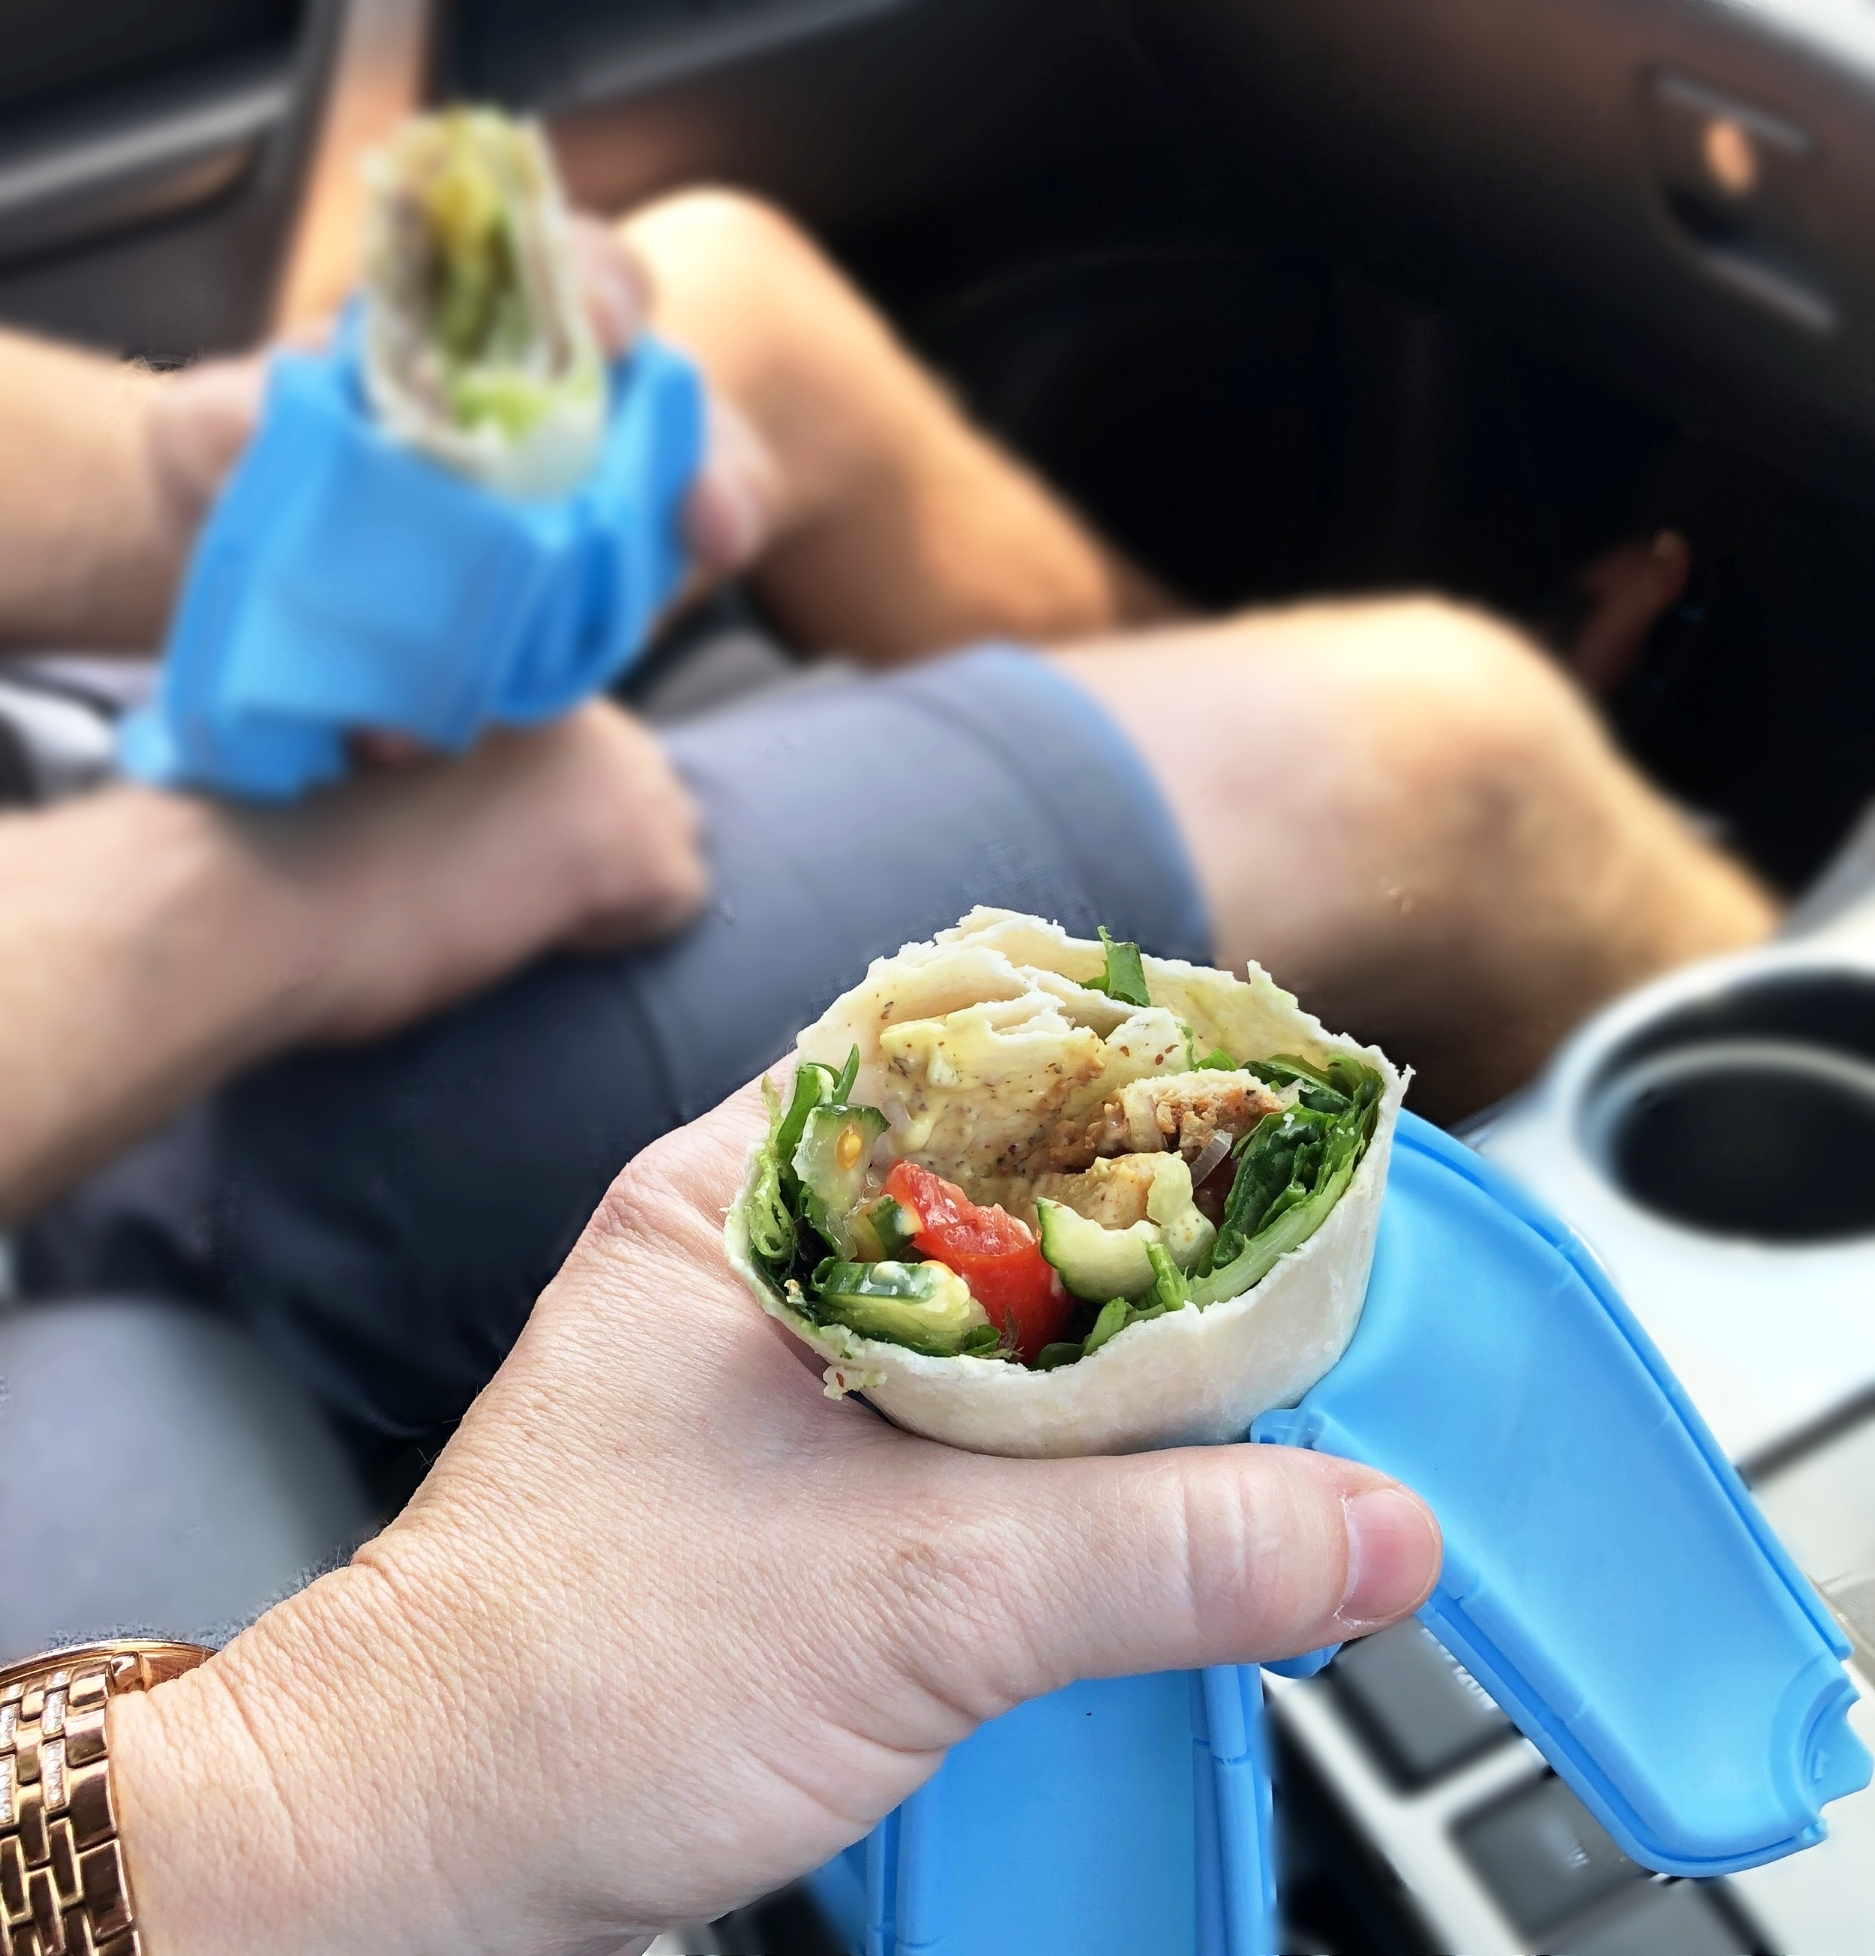 Wrap'd in the car, on the go.